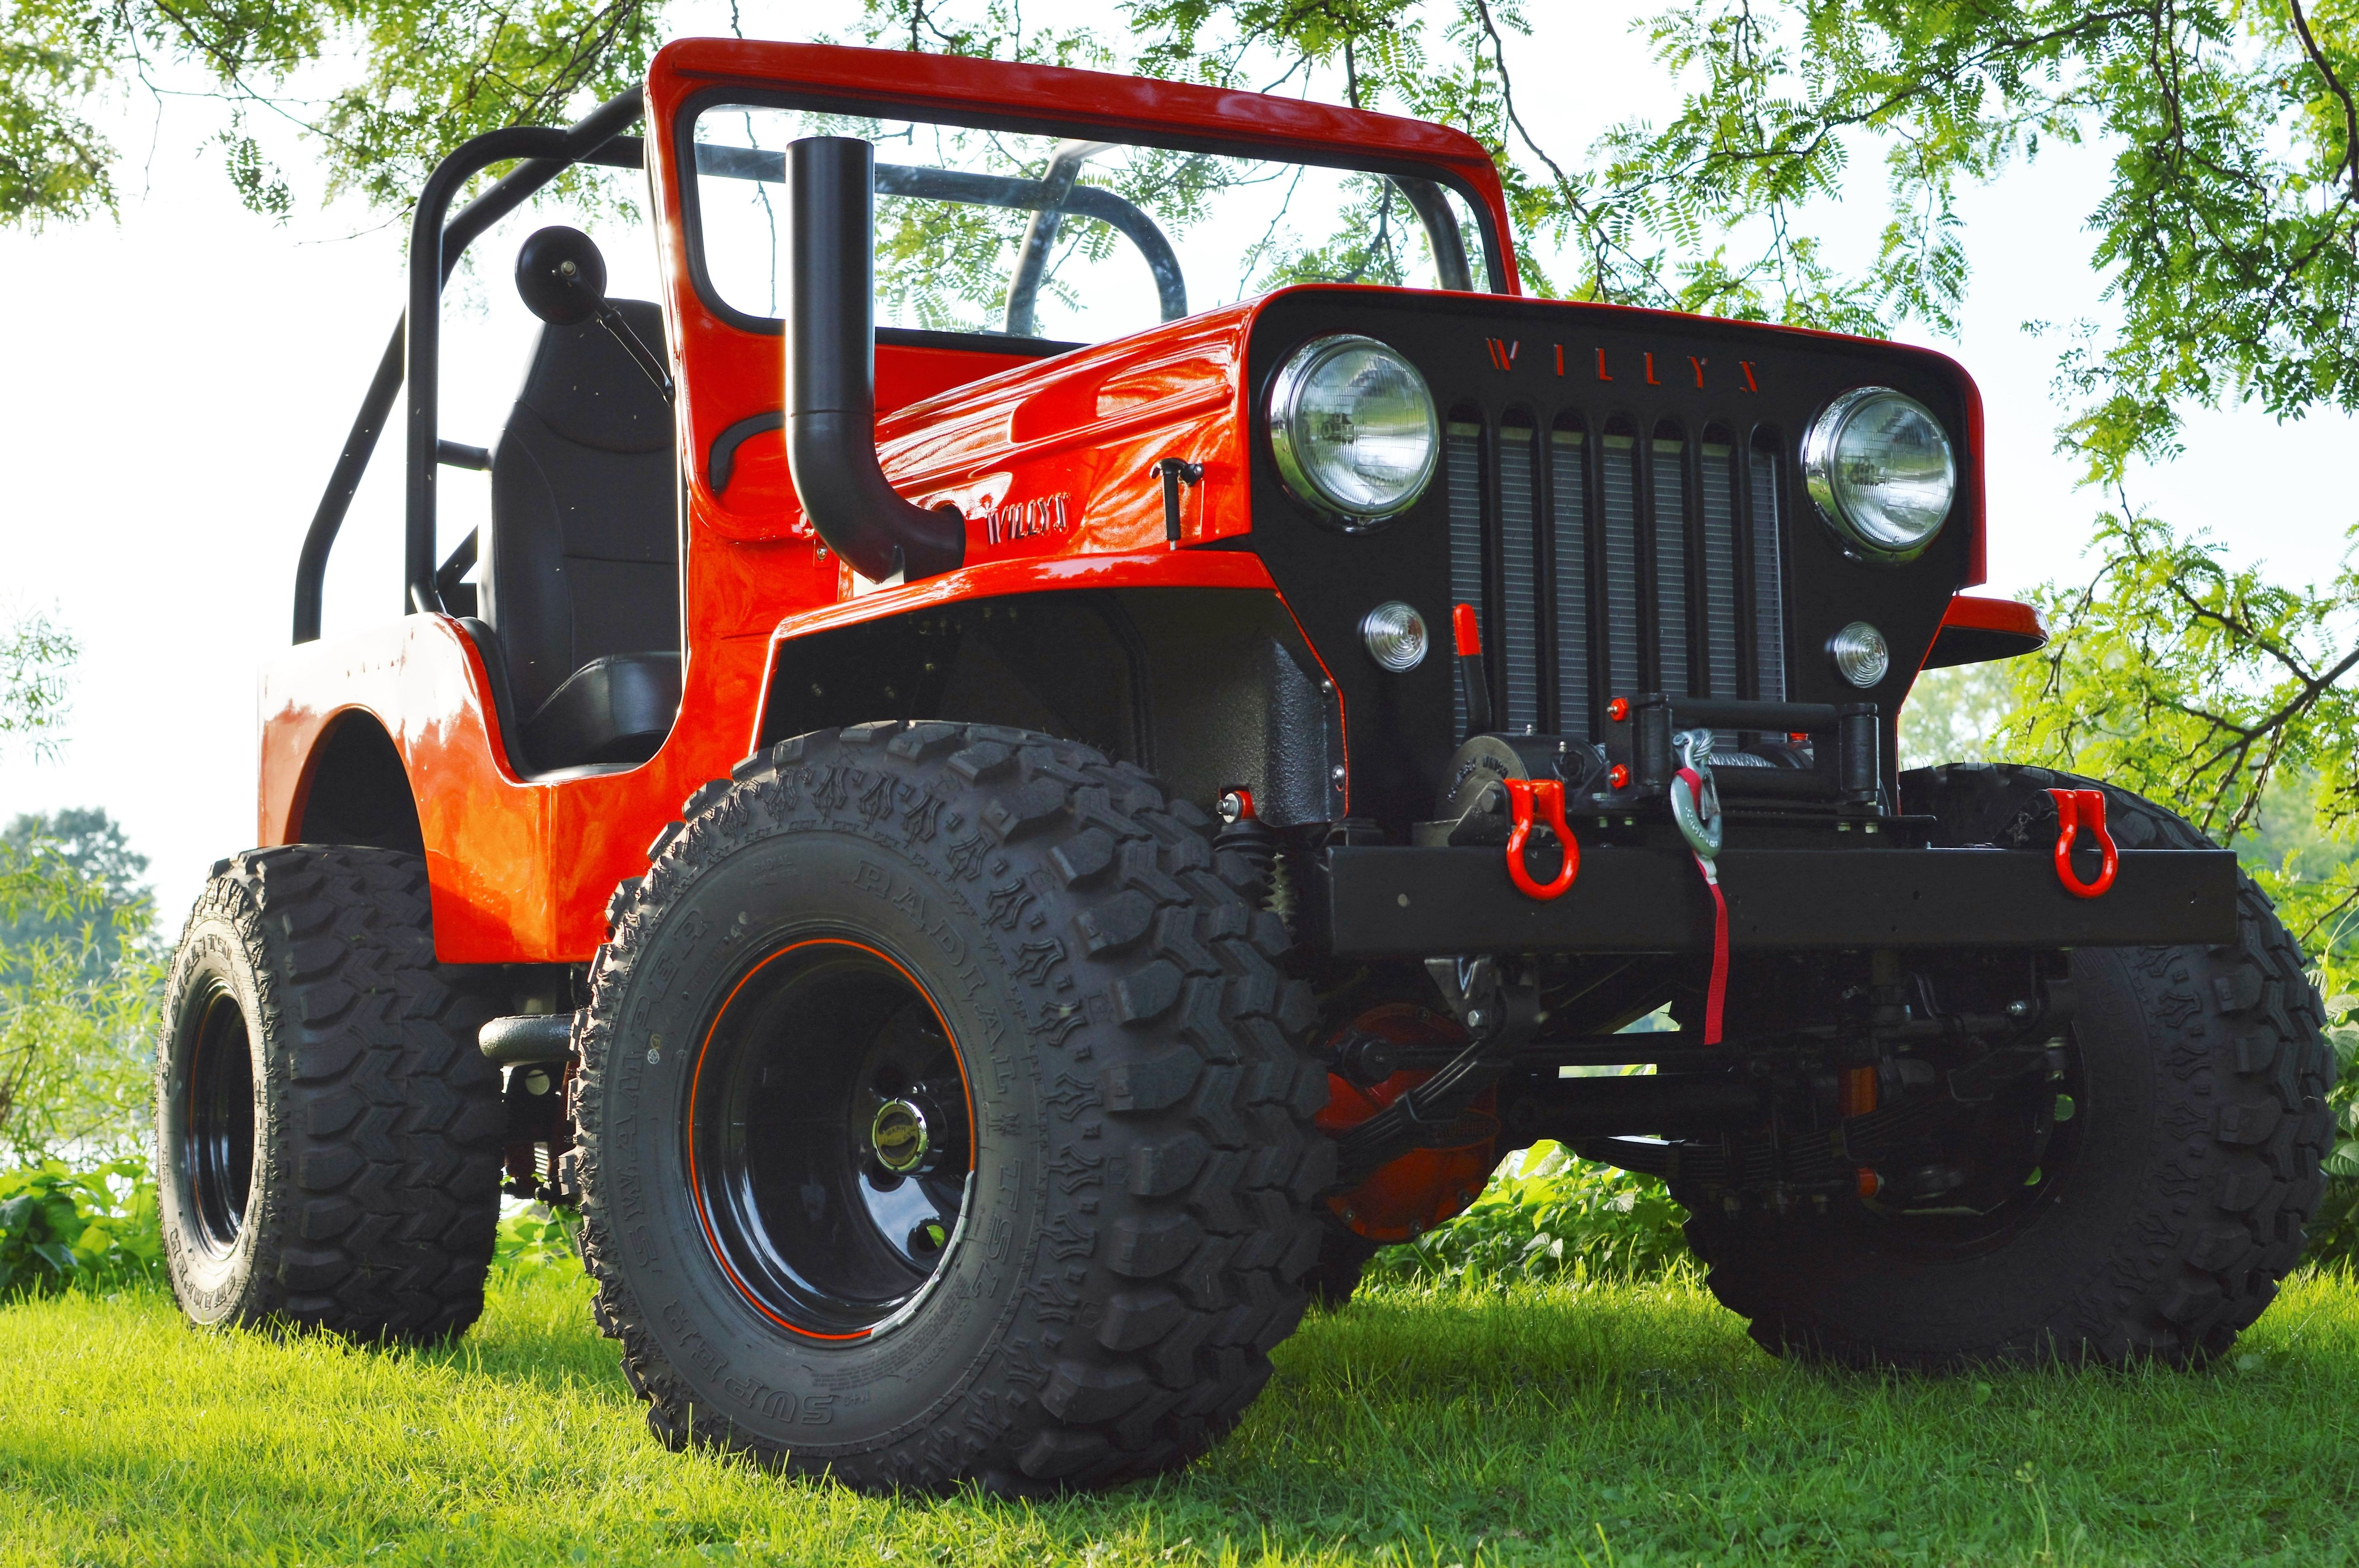 medium resolution of just got some pictures back from the photographer 1956 willys cj3b 4bt cummins custom jeep jeeplife wrangler jeeps cherokee jeepmafia offroad 4x4